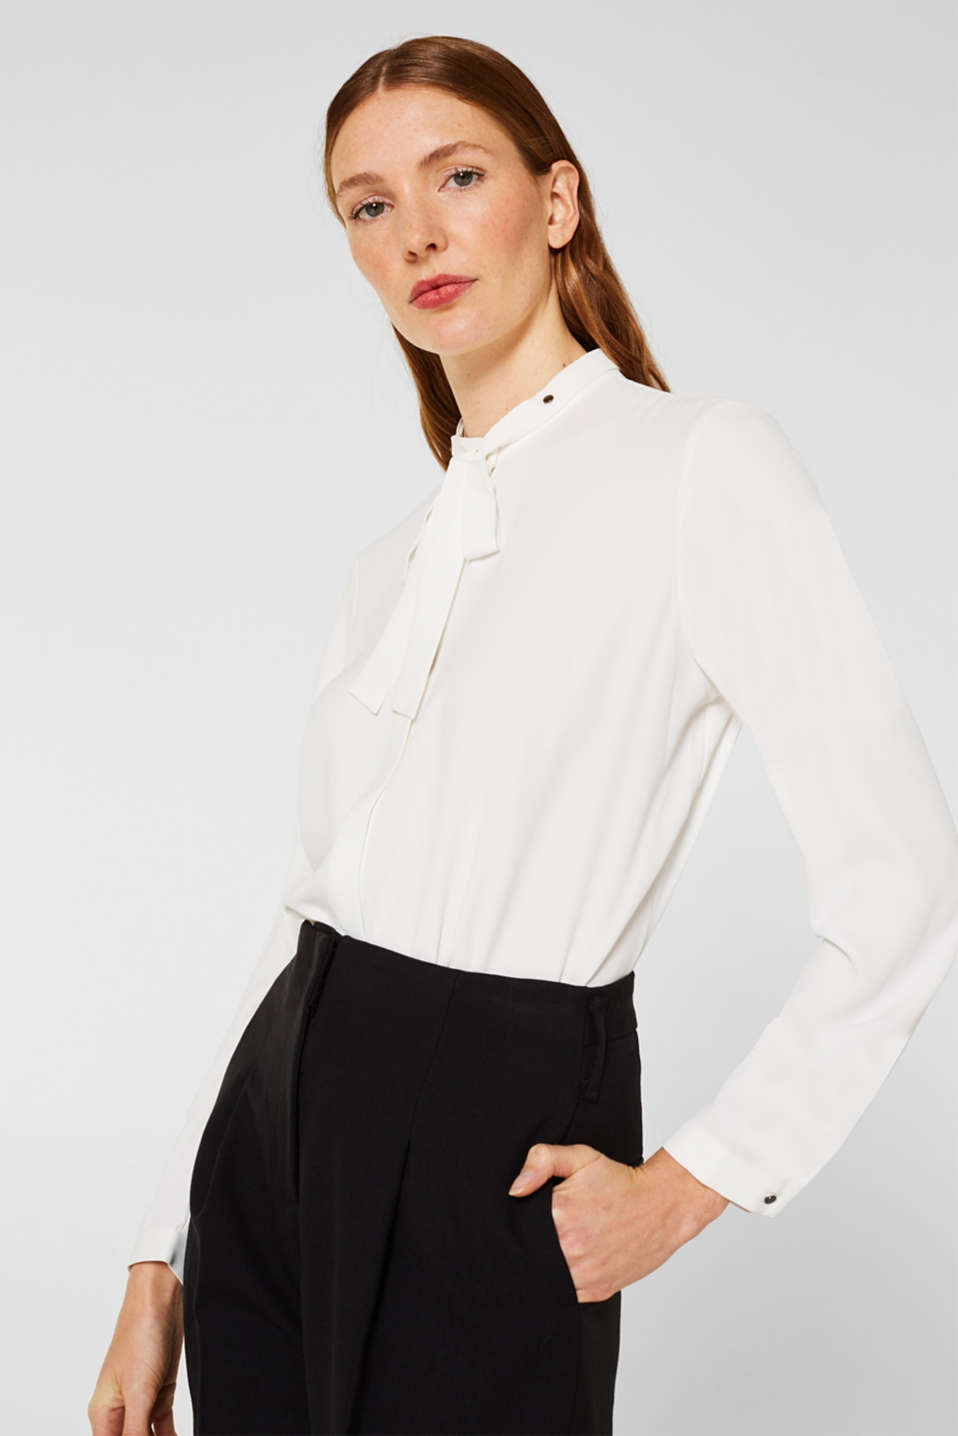 Crêpe blouse with an adjustable collar